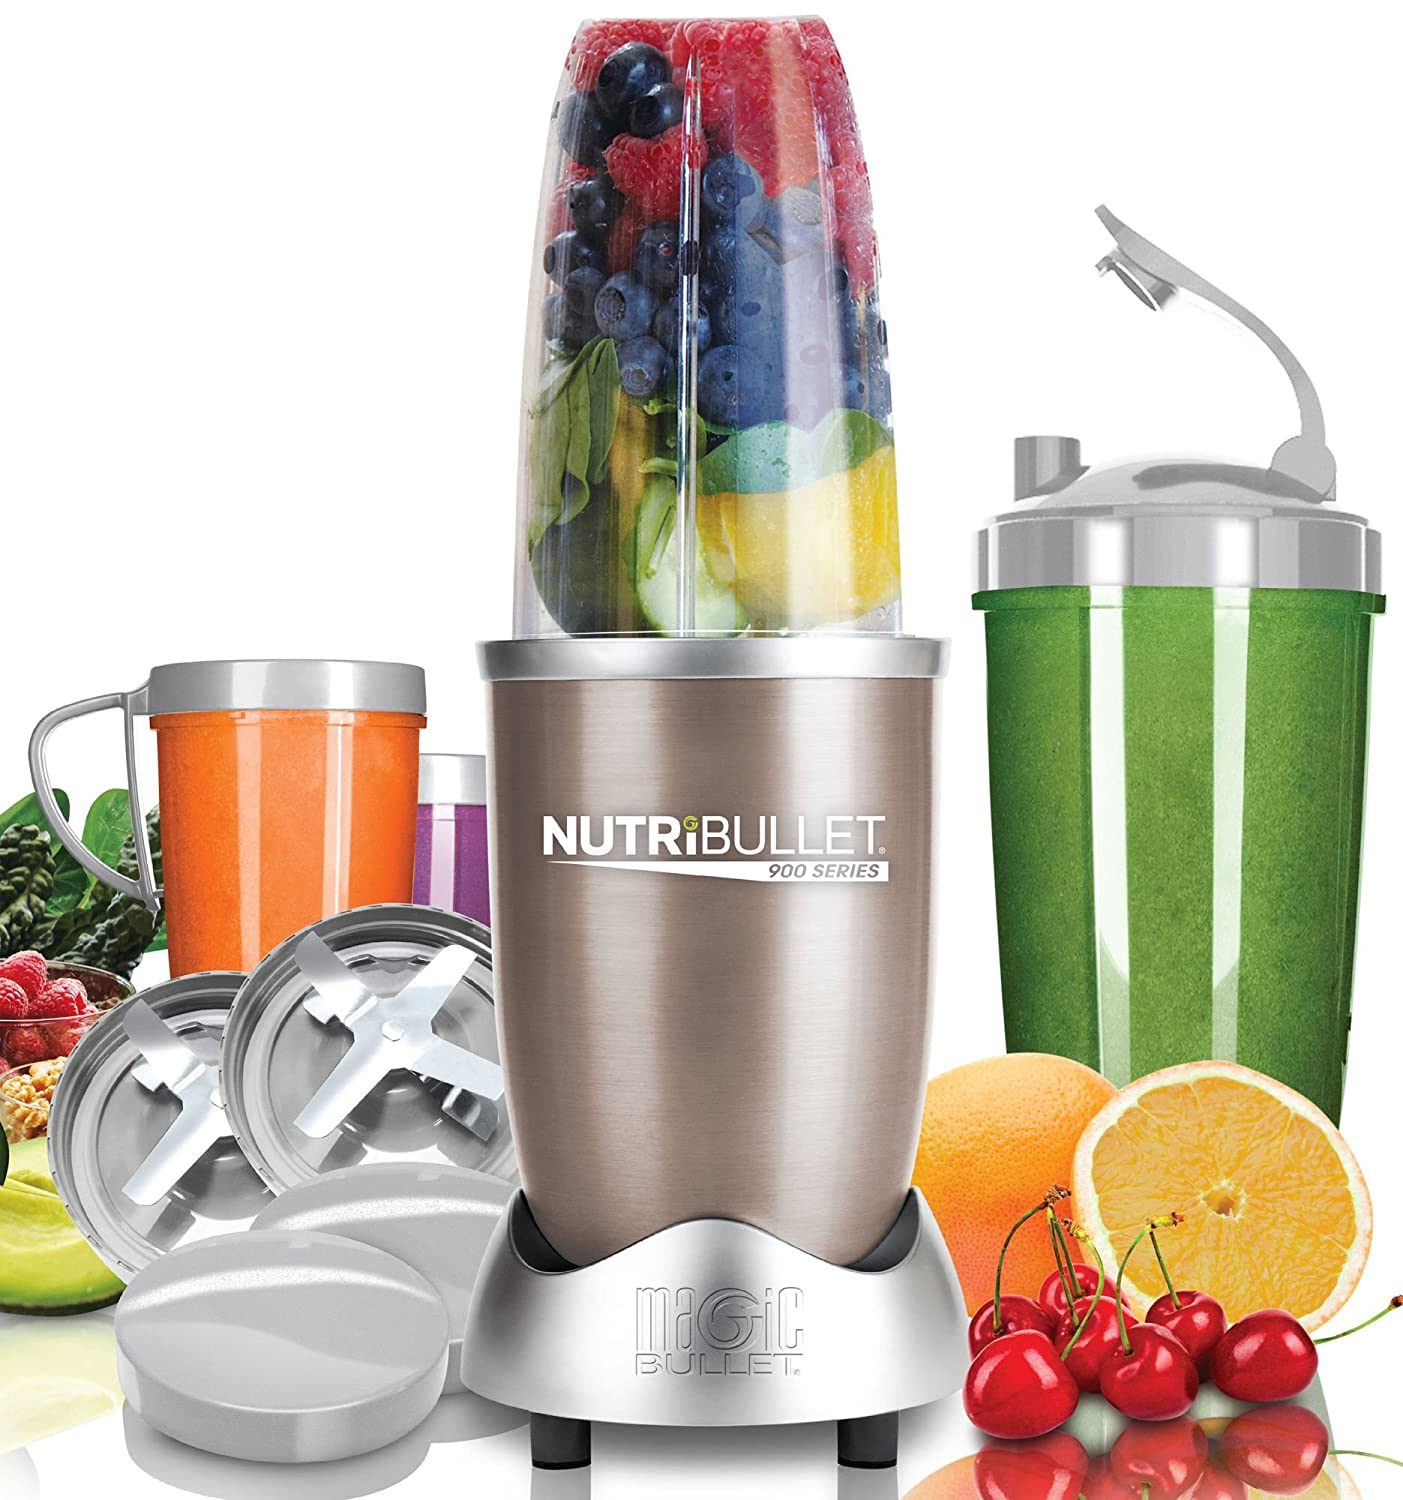 magic bullet nutribullet pro 900 series products reviews share. Black Bedroom Furniture Sets. Home Design Ideas